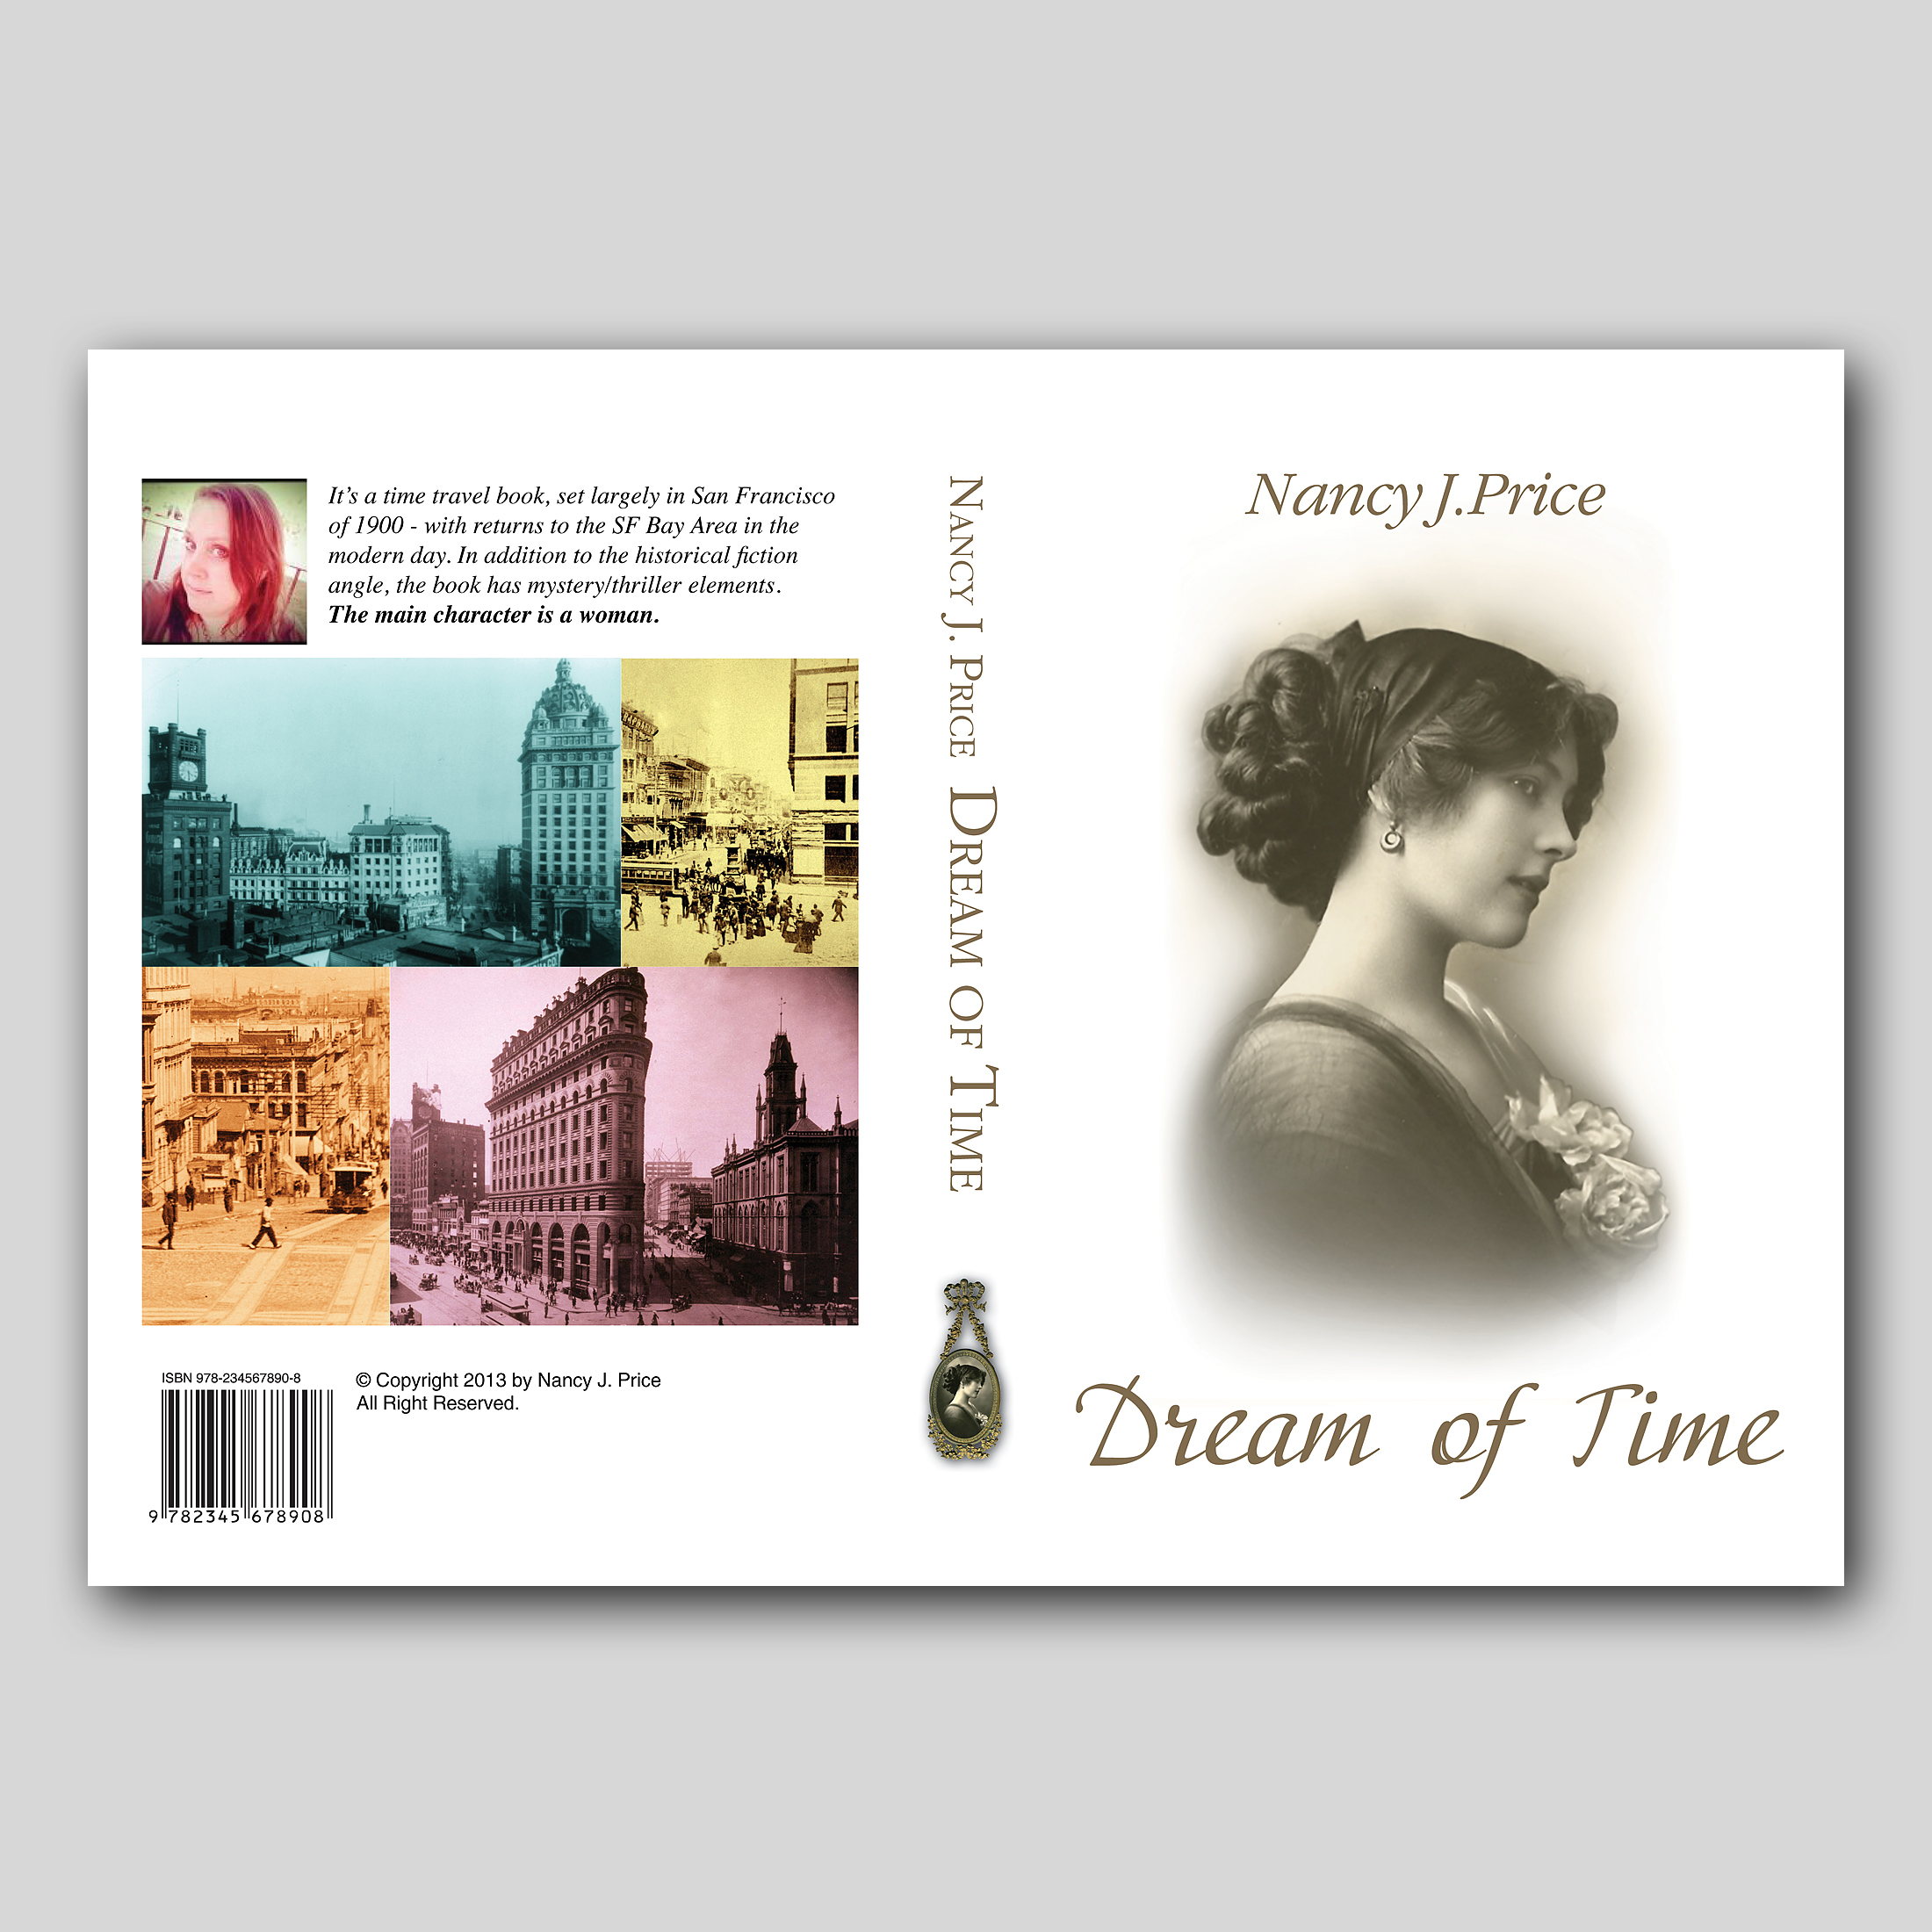 Book Cover Design by sokol25 - Entry No. 42 in the Book Cover Design Contest Fun Book Cover Design for Dream of Time.